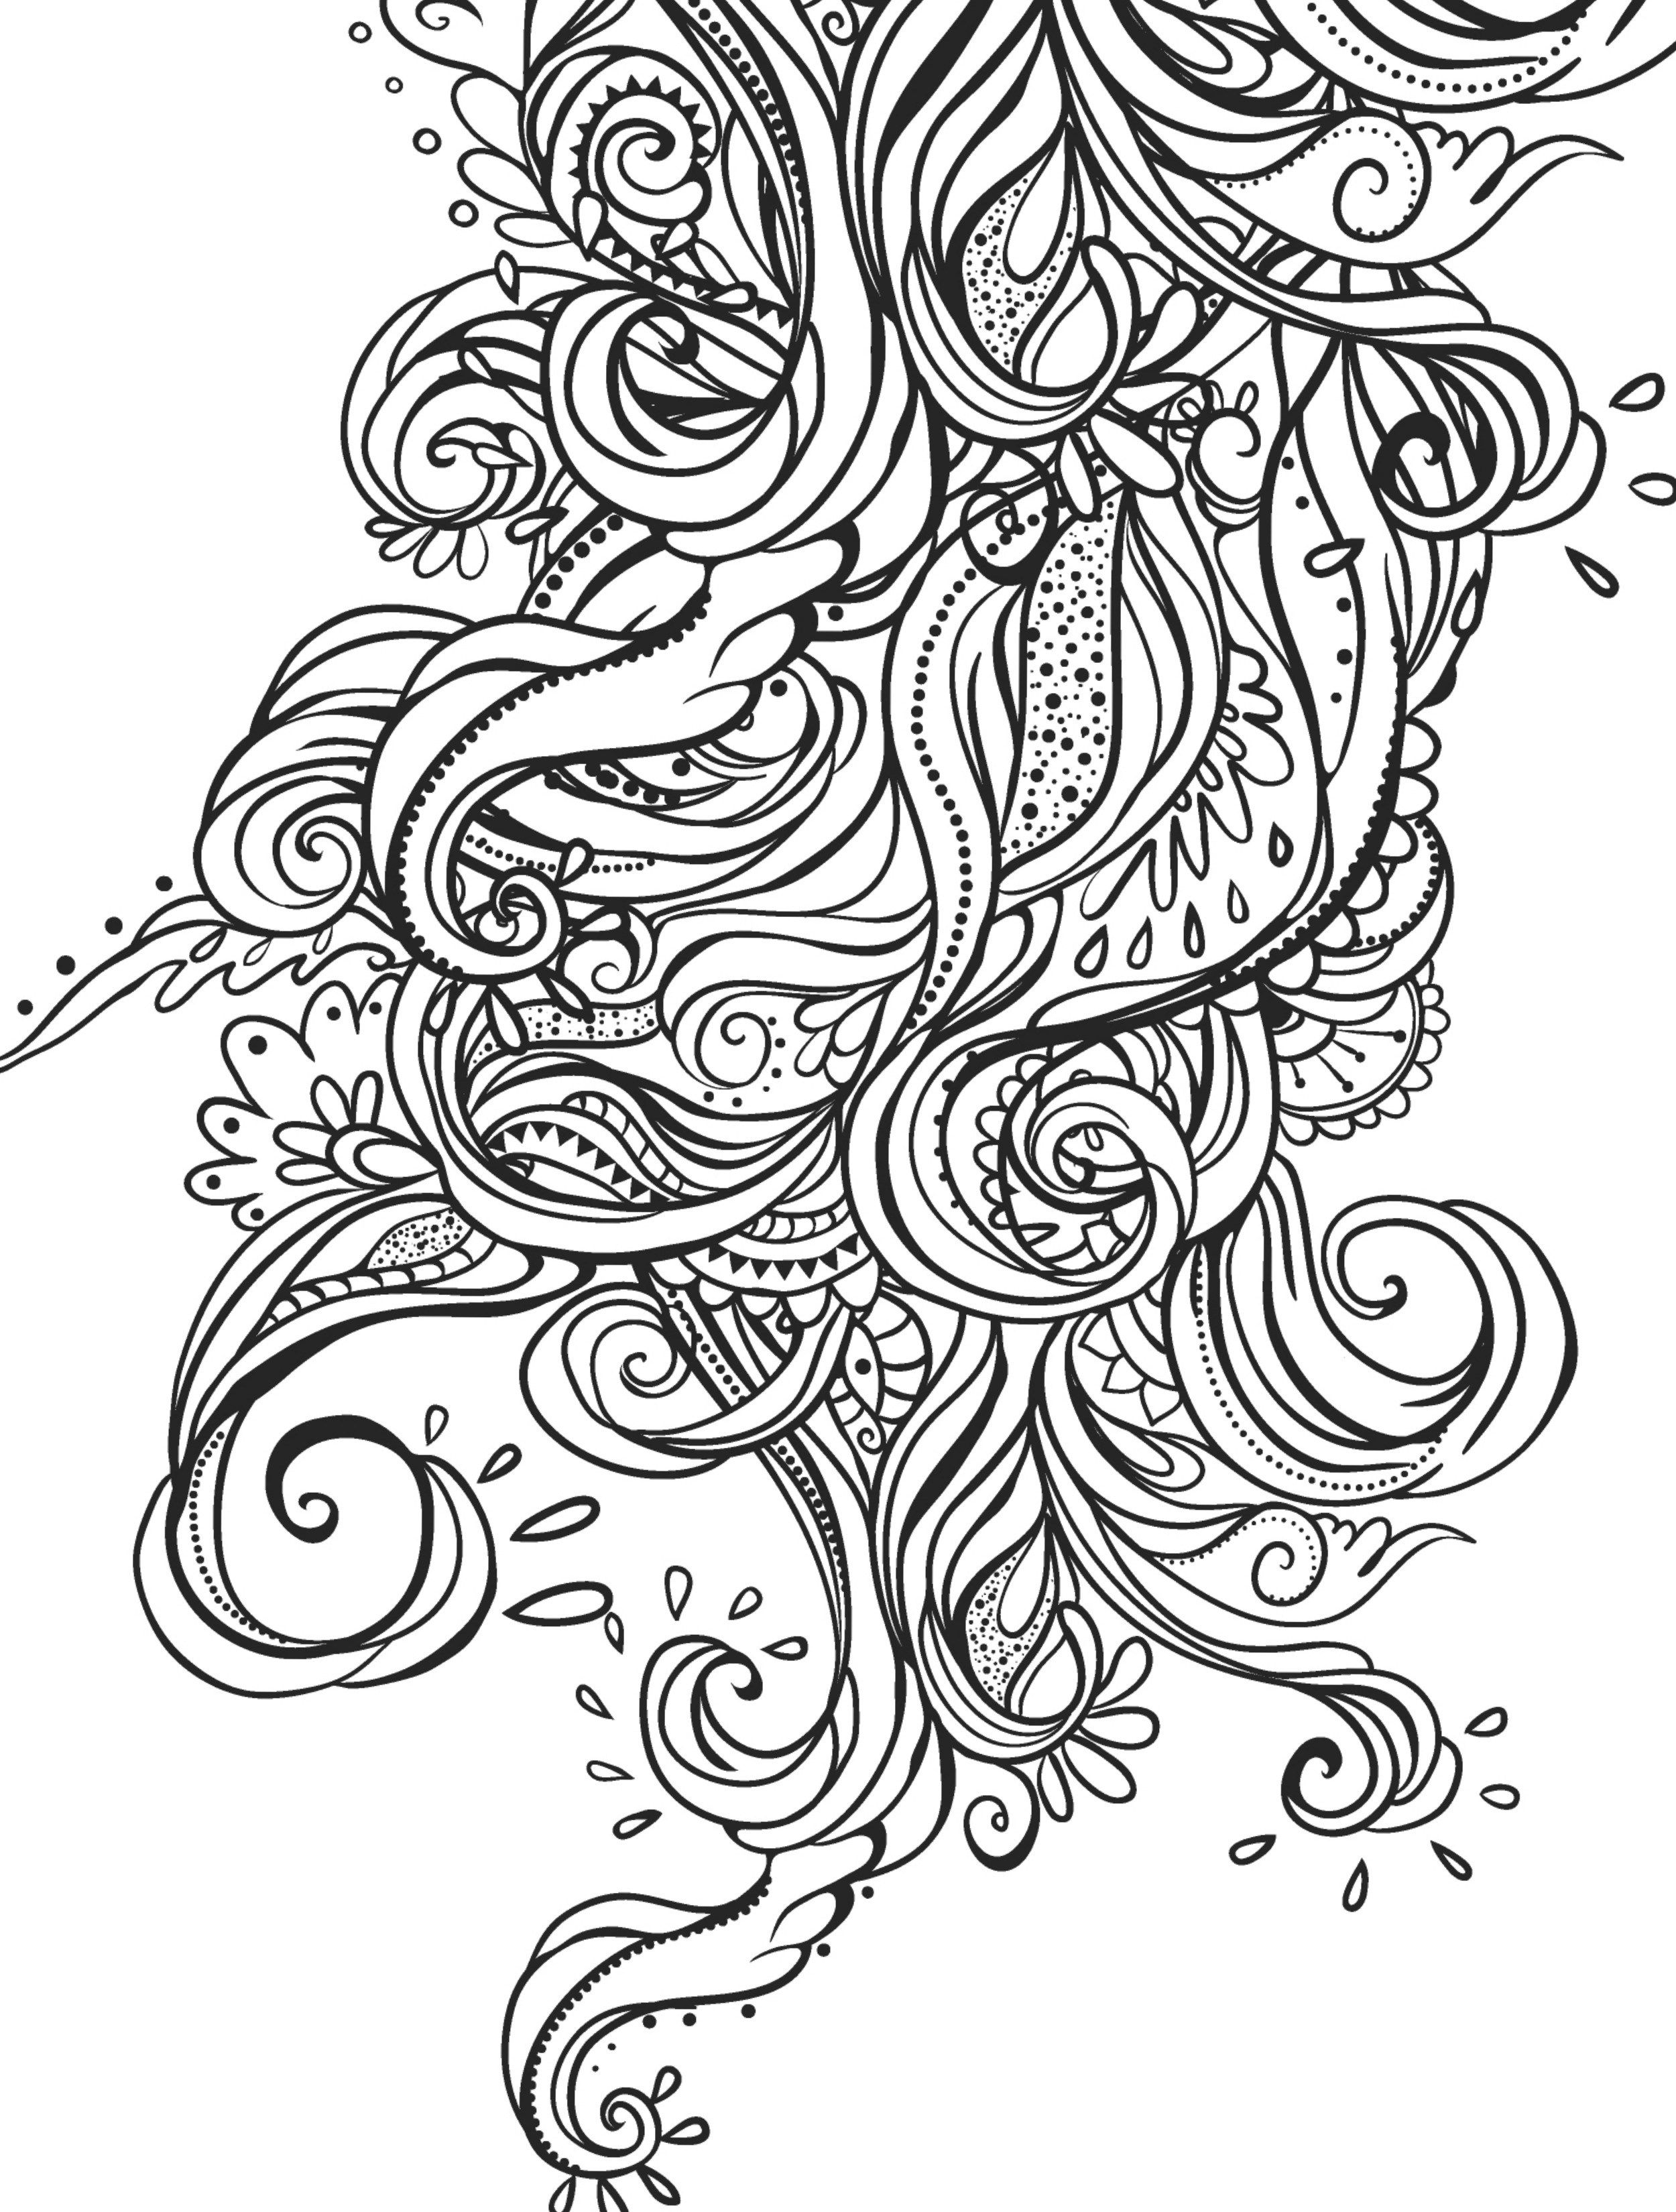 15 crazy busy coloring pages for adults page 5 of 16 crazy